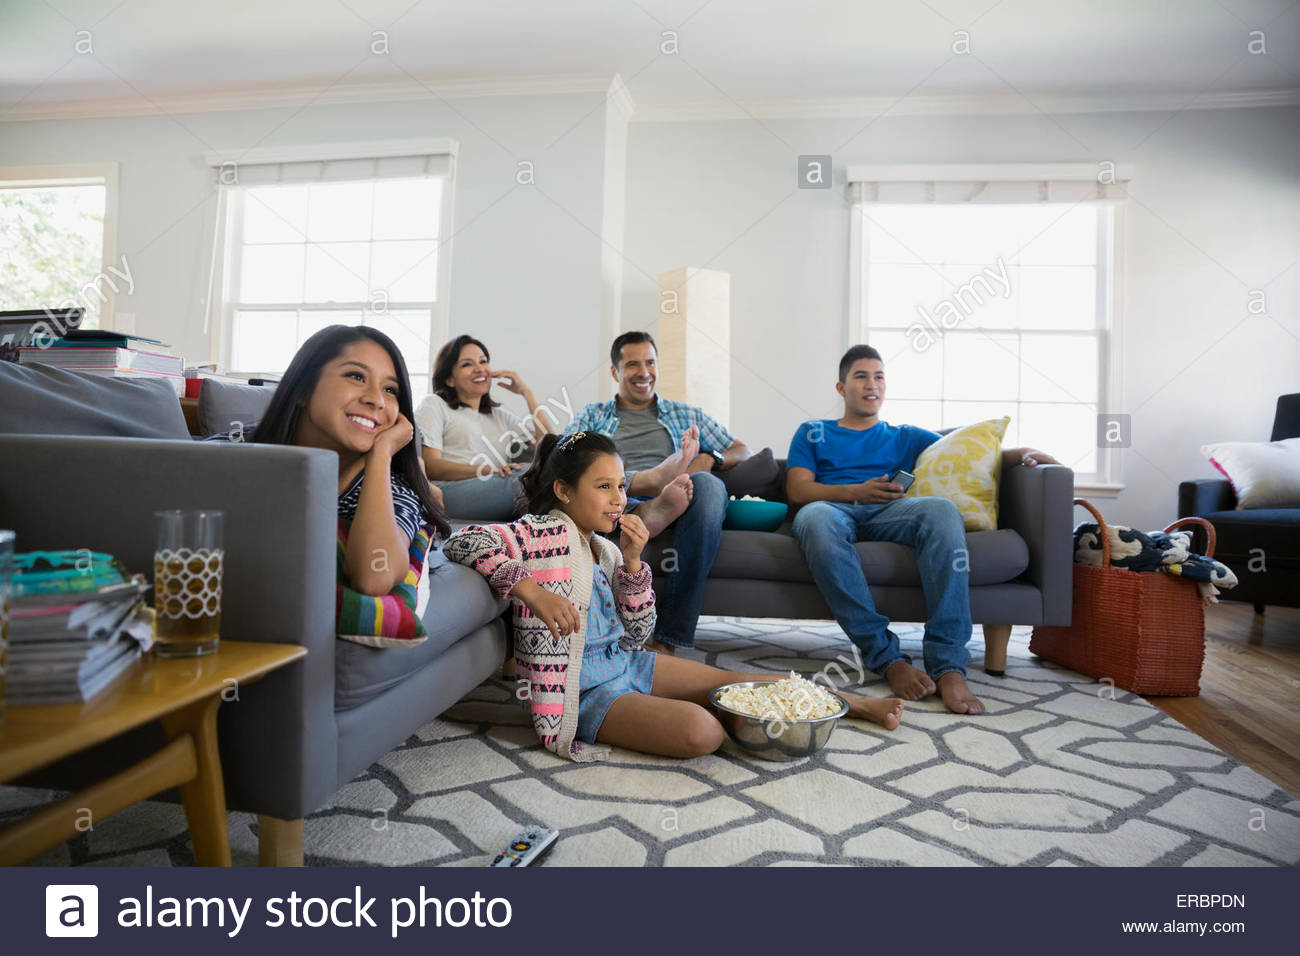 Tv In Living Room Family Watching Tv With Popcorn In Living Room Stock Photo